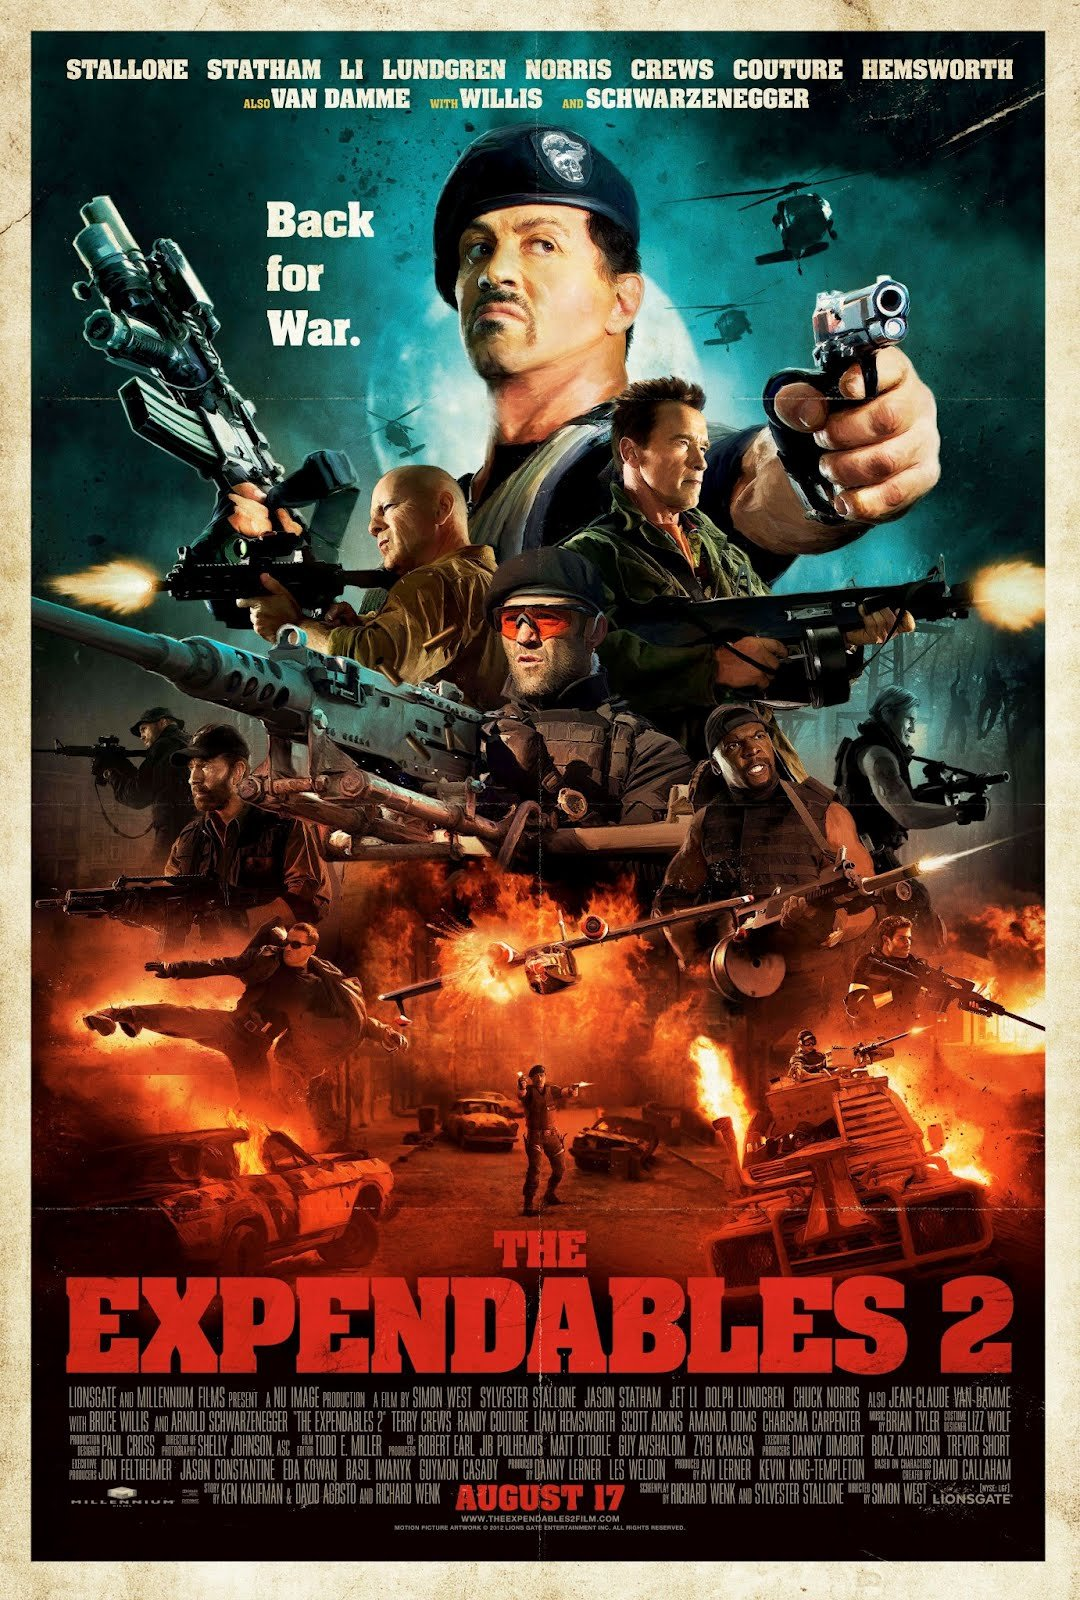 The Expendables 2 Comic Con Poster